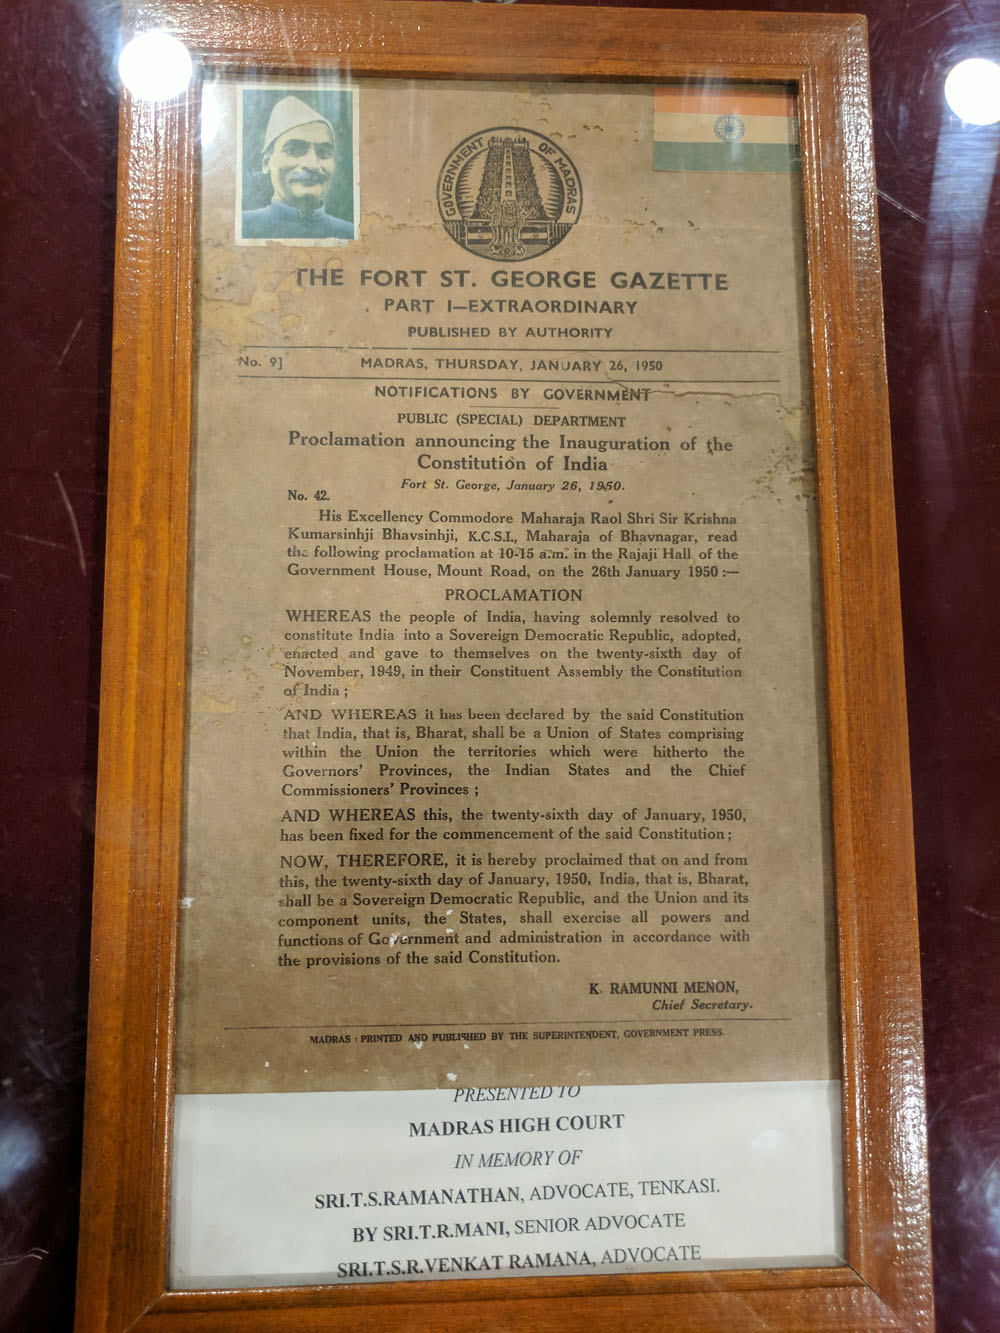 Proclamation announcing the Inauguration of the Constitution of India in Fort St.George - January 26, 1950